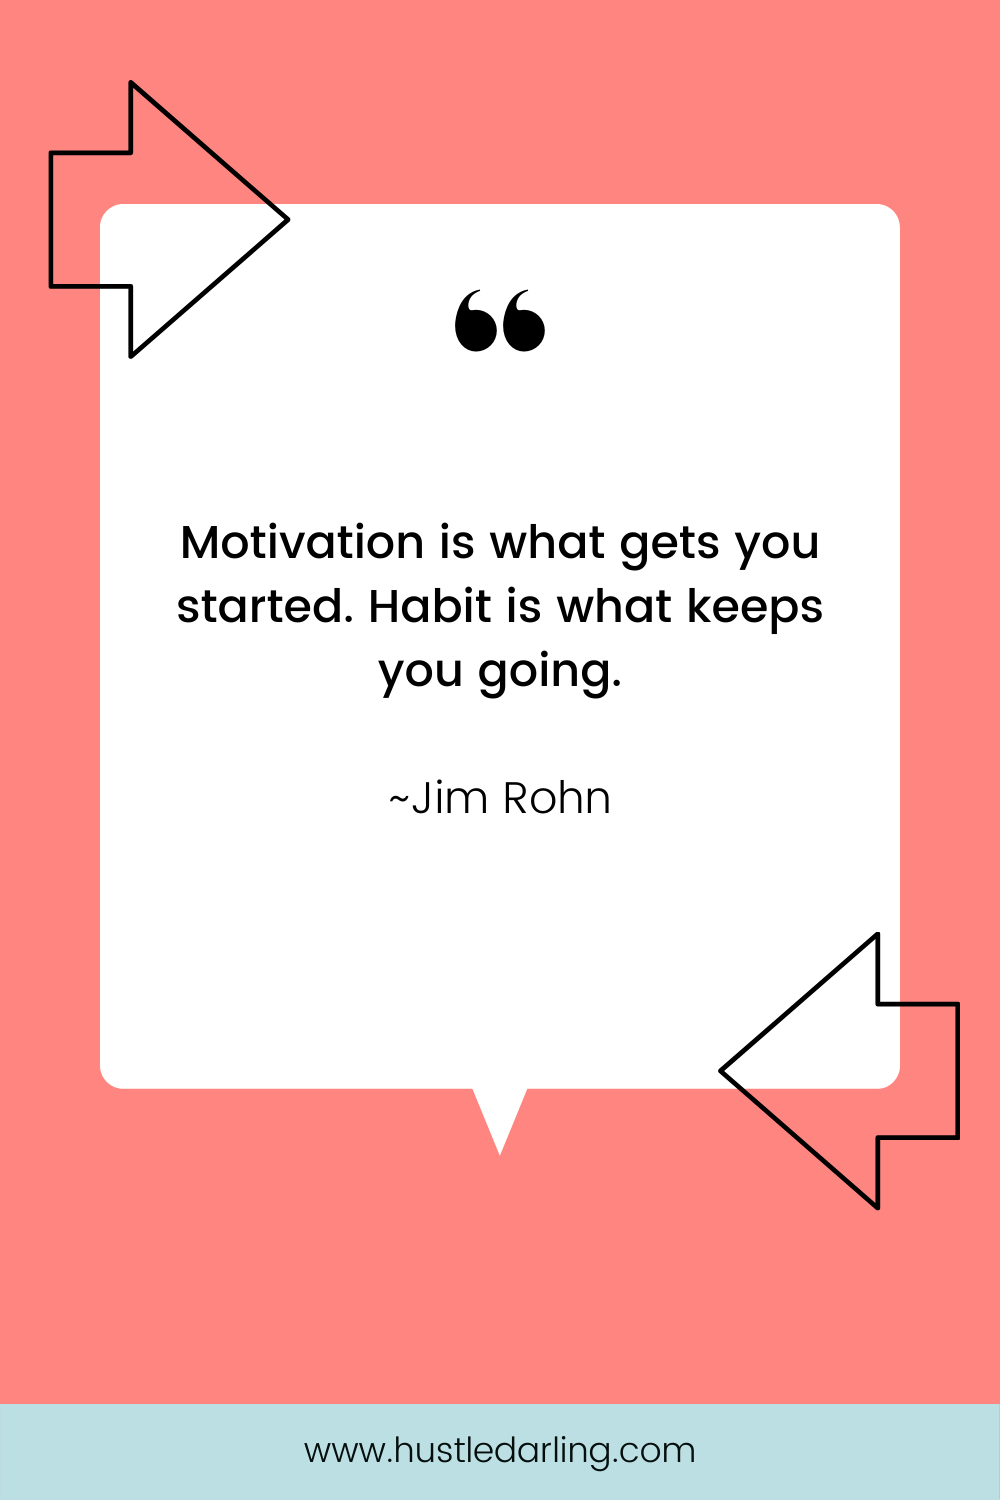 """A black, line-drawn arrow is in the top left corner and the bottom right corner of the image. On a pink background is a white speech bubble with a large quotation mark at the top. Text underneath reads """"Motivation is what gets you started. Habit is what keeps you going. ~ Jim Rohn"""""""